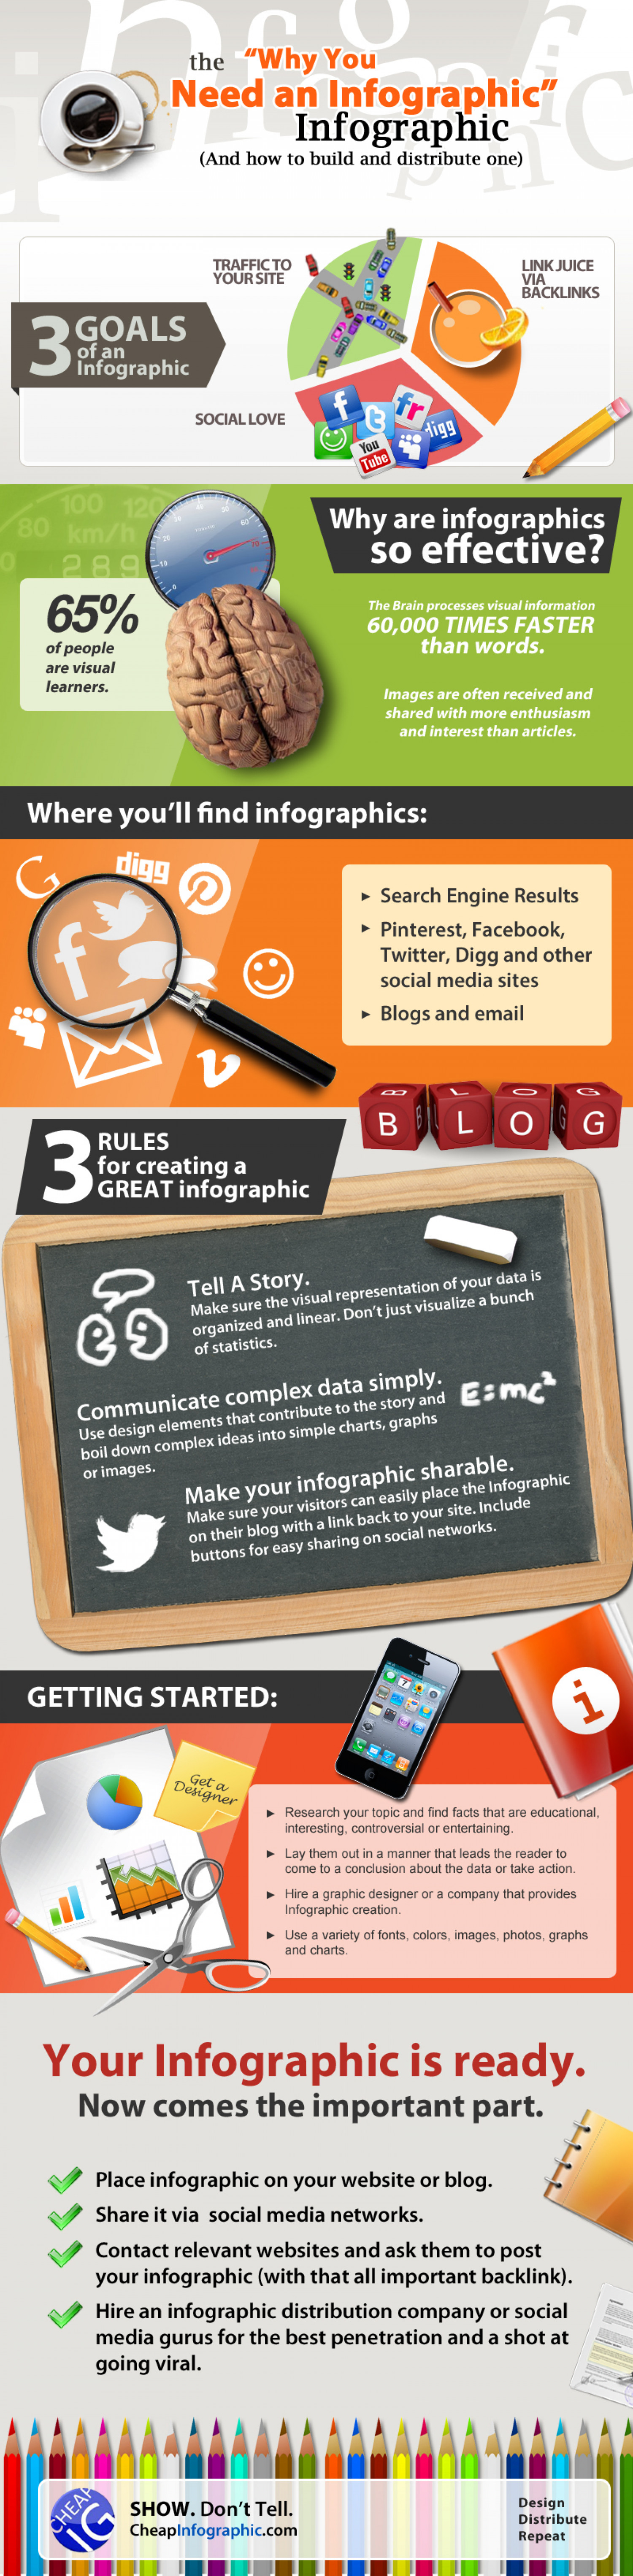 "The ""Why You Need an Infographic"" Infographic Infographic"